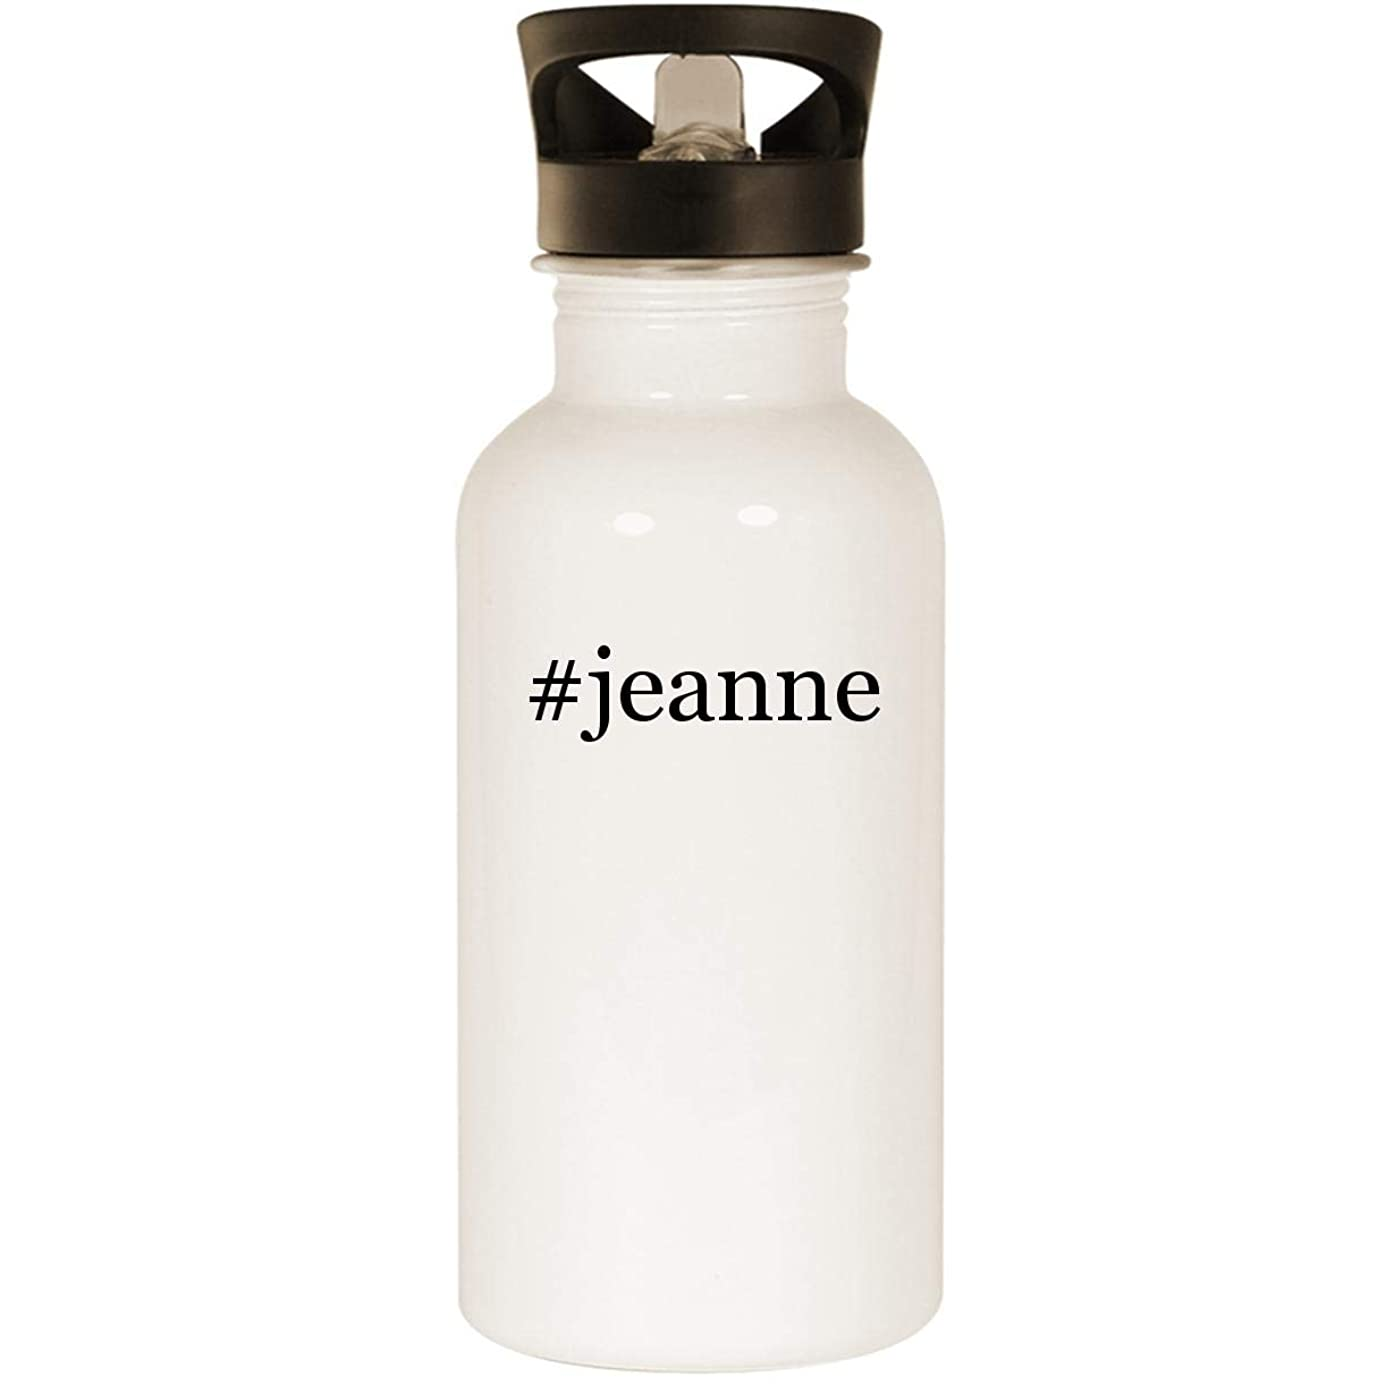 #jeanne - Stainless Steel Hashtag 20oz Road Ready Water Bottle, White